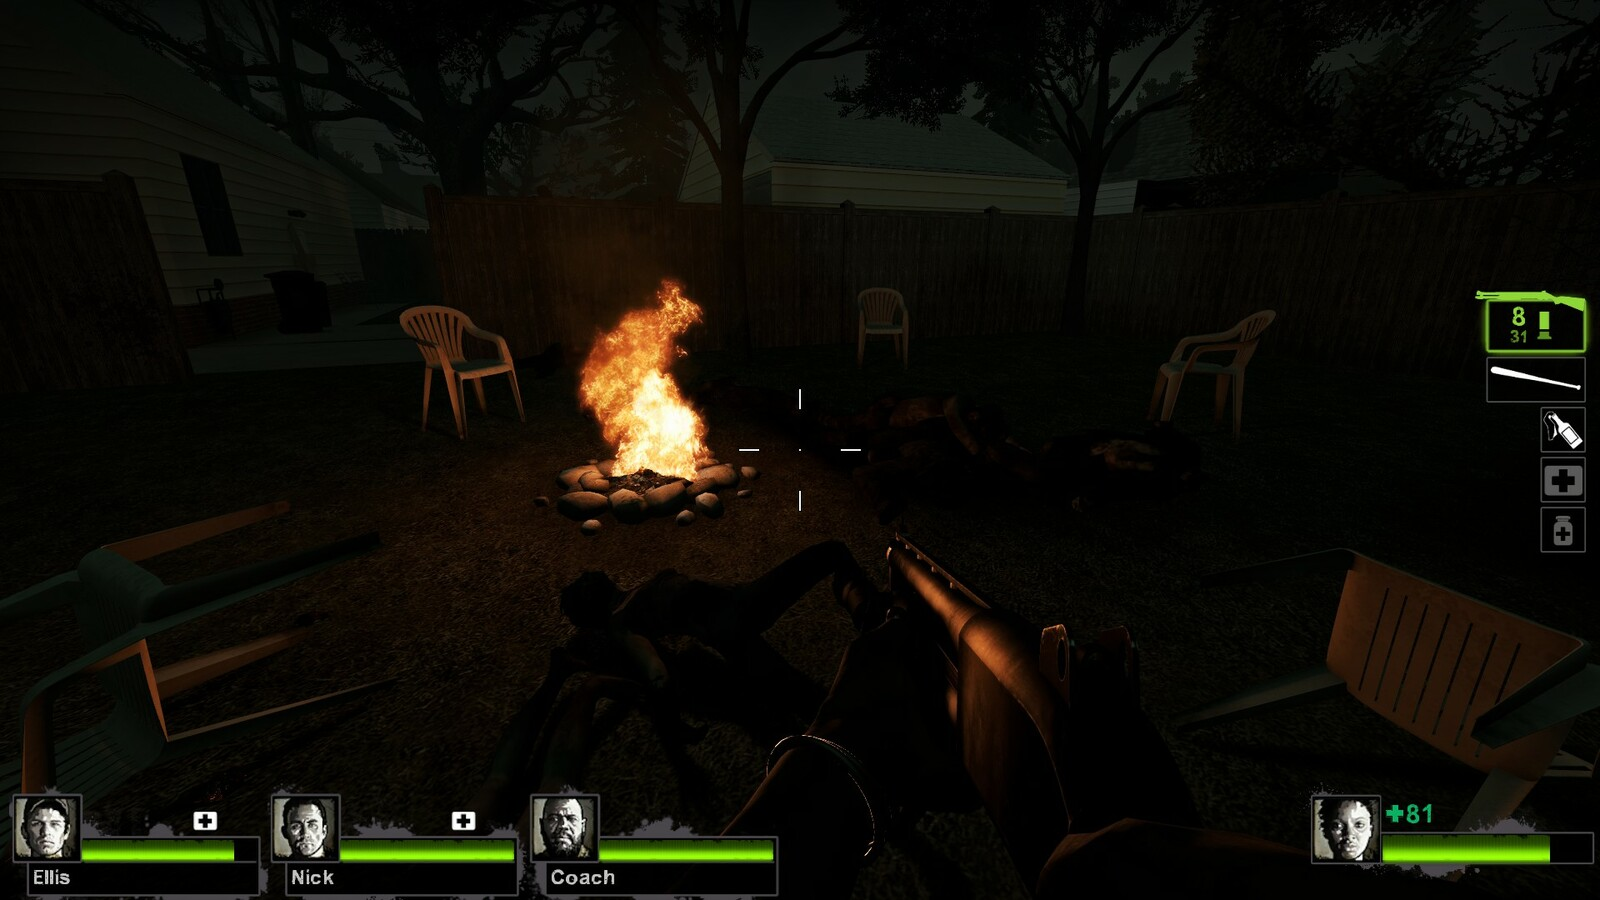 Since players can run into several backyards and then be funneled through to the correct street, they can encounter various stories being told through the environment.